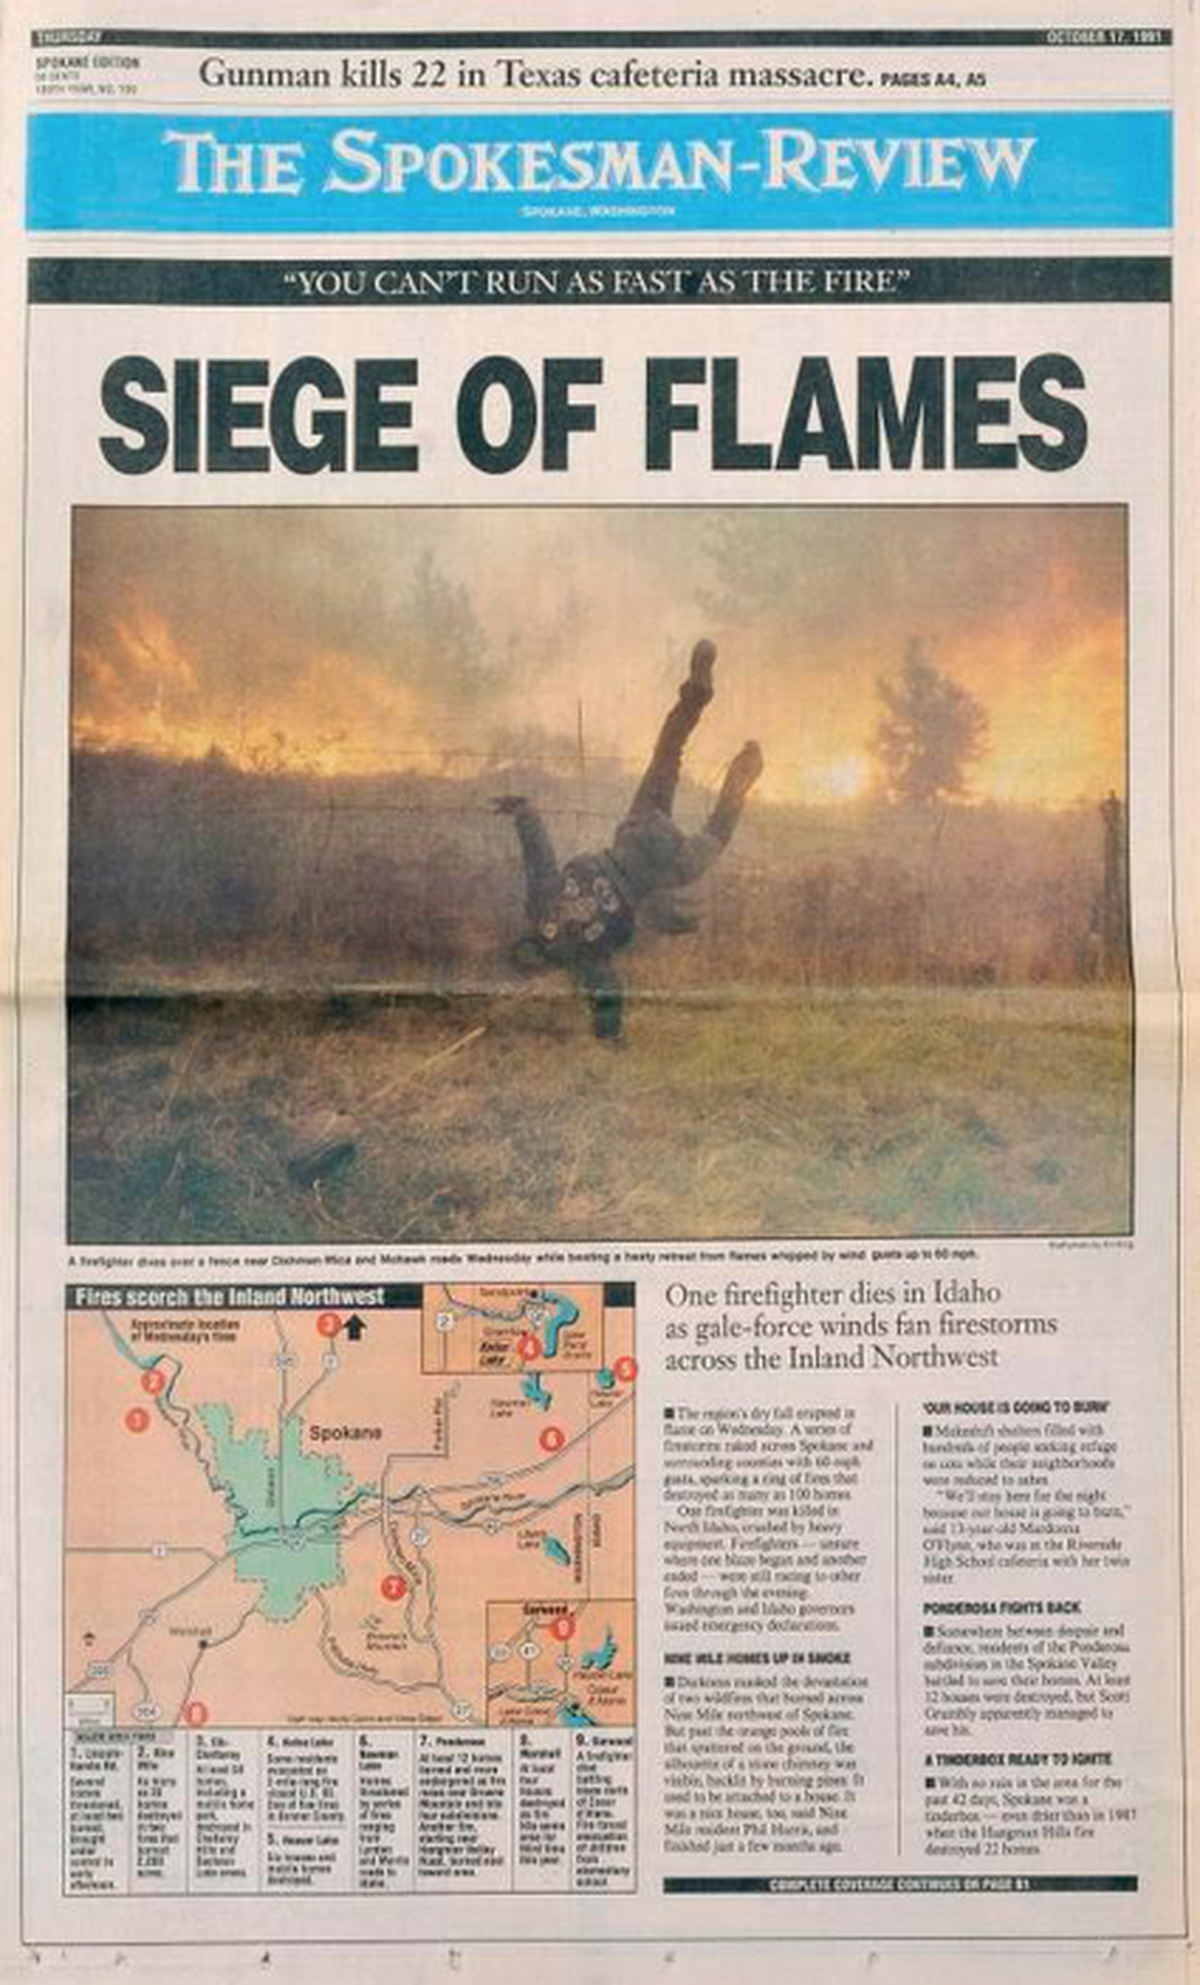 SR front page from Oct. 17, 1991